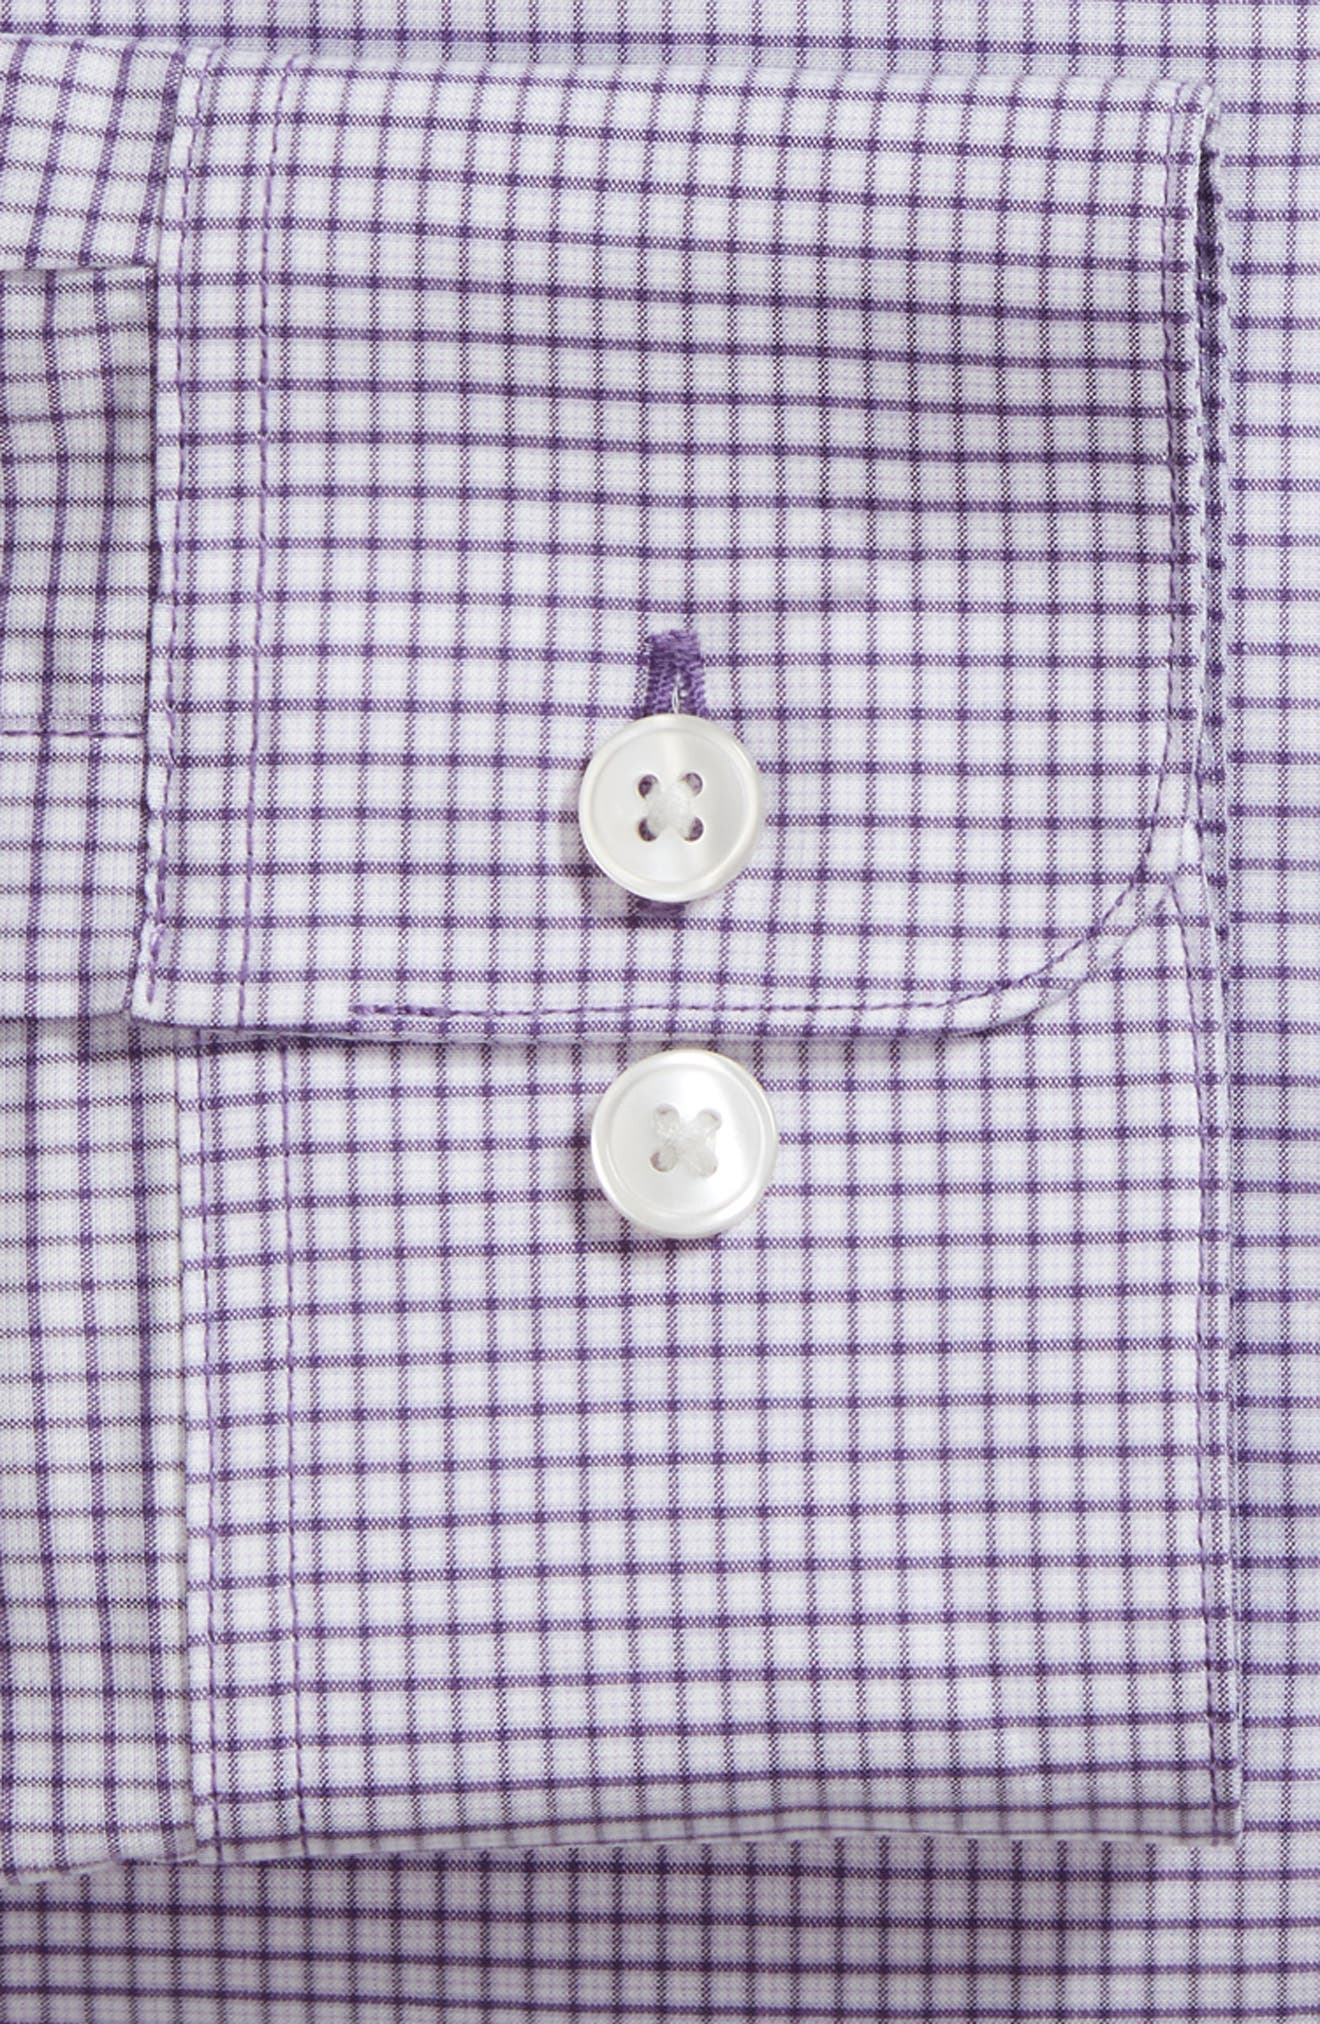 Regular Fit Stretch Check Dress Shirt,                             Alternate thumbnail 6, color,                             522